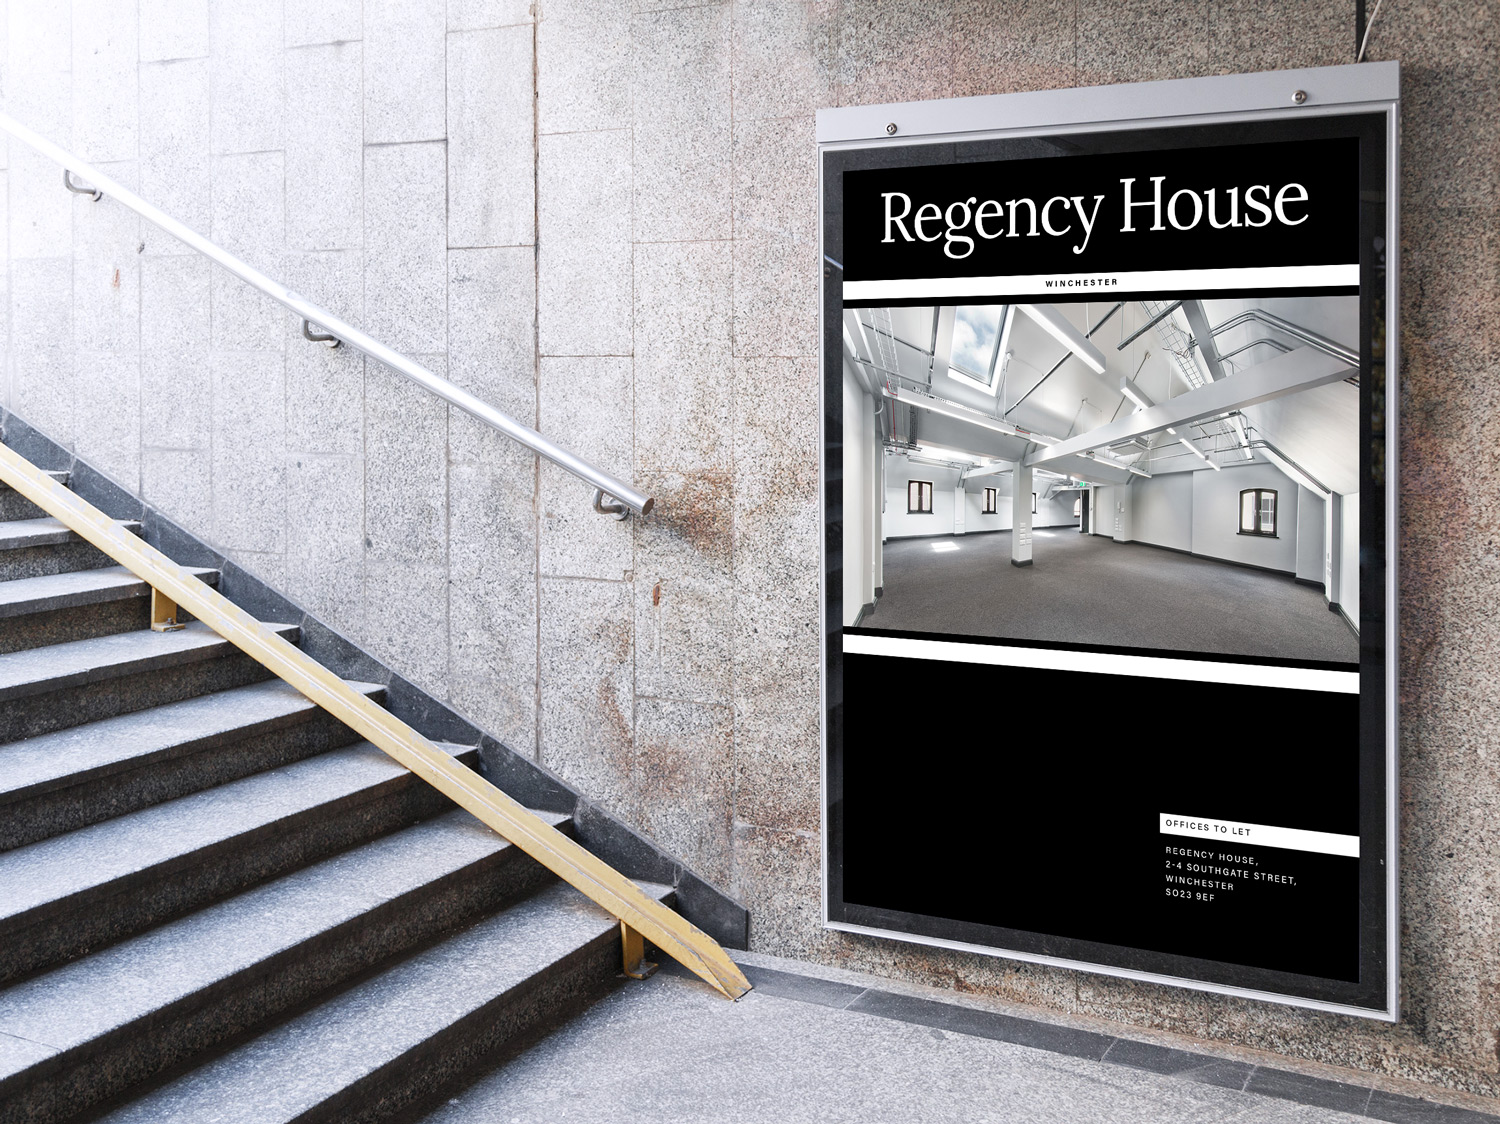 regency-house-train-station-by-ALSO-agency-00.jpg